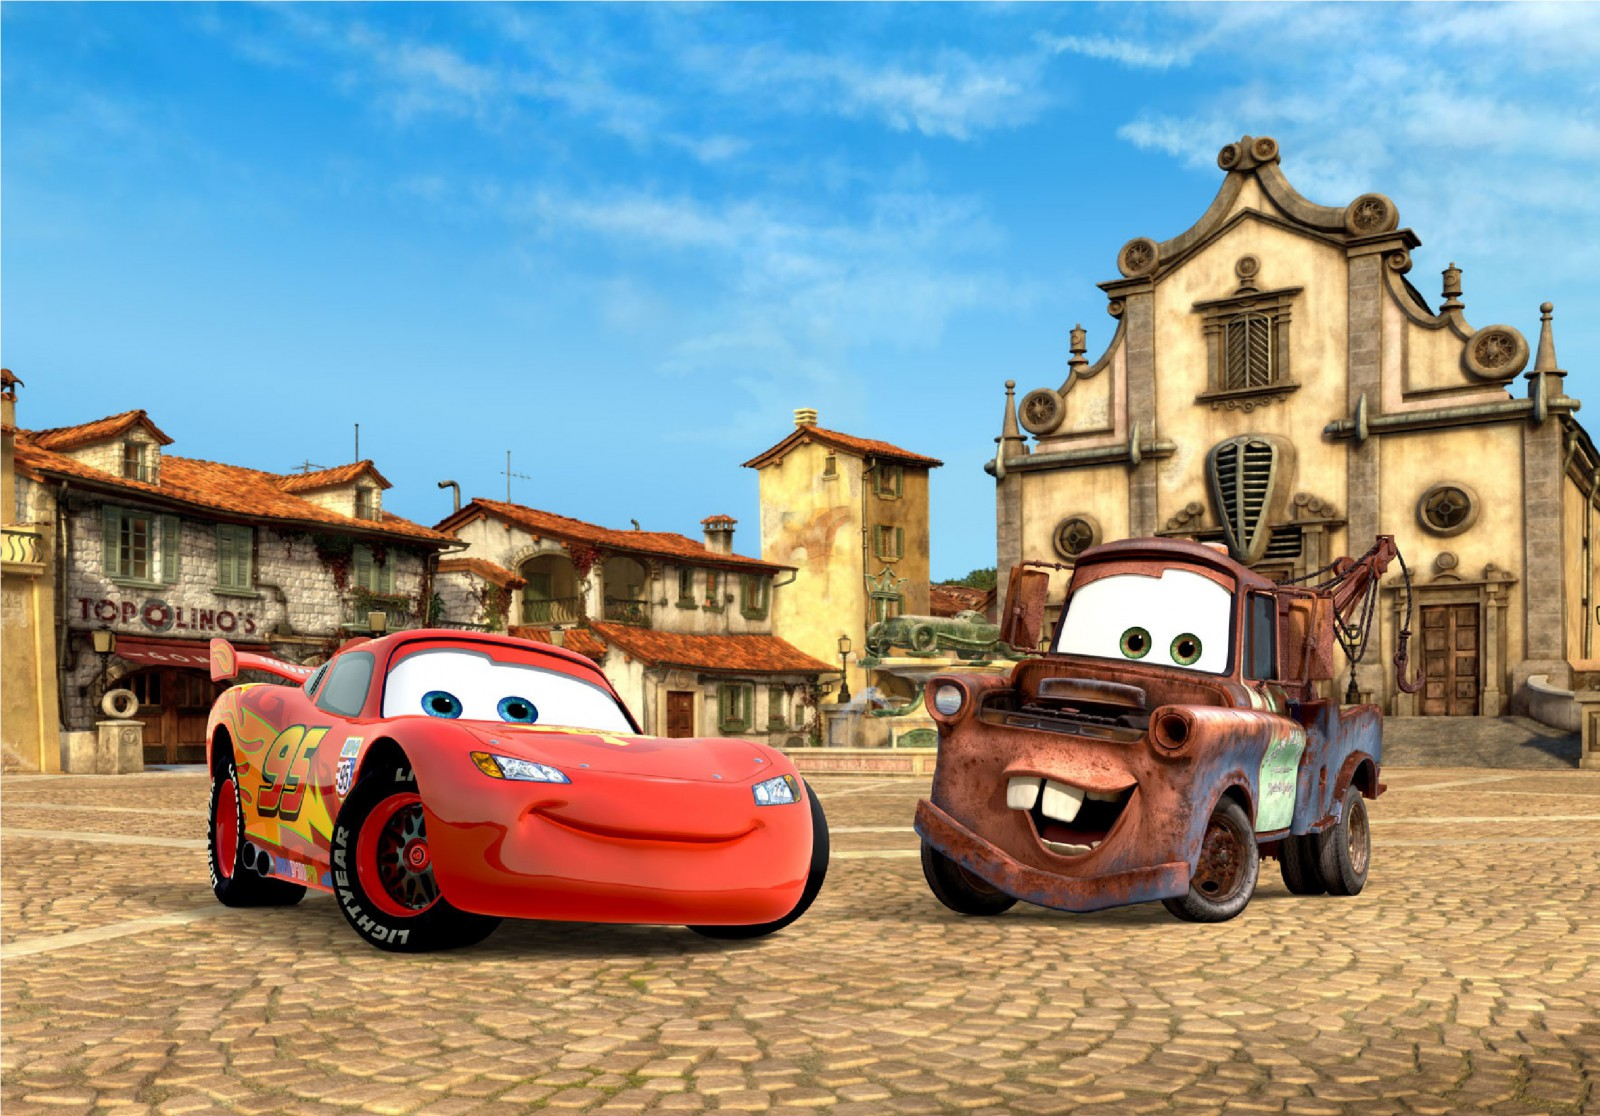 XXL Photo Wallpaper Disney Cars Lightning McQueen Mural